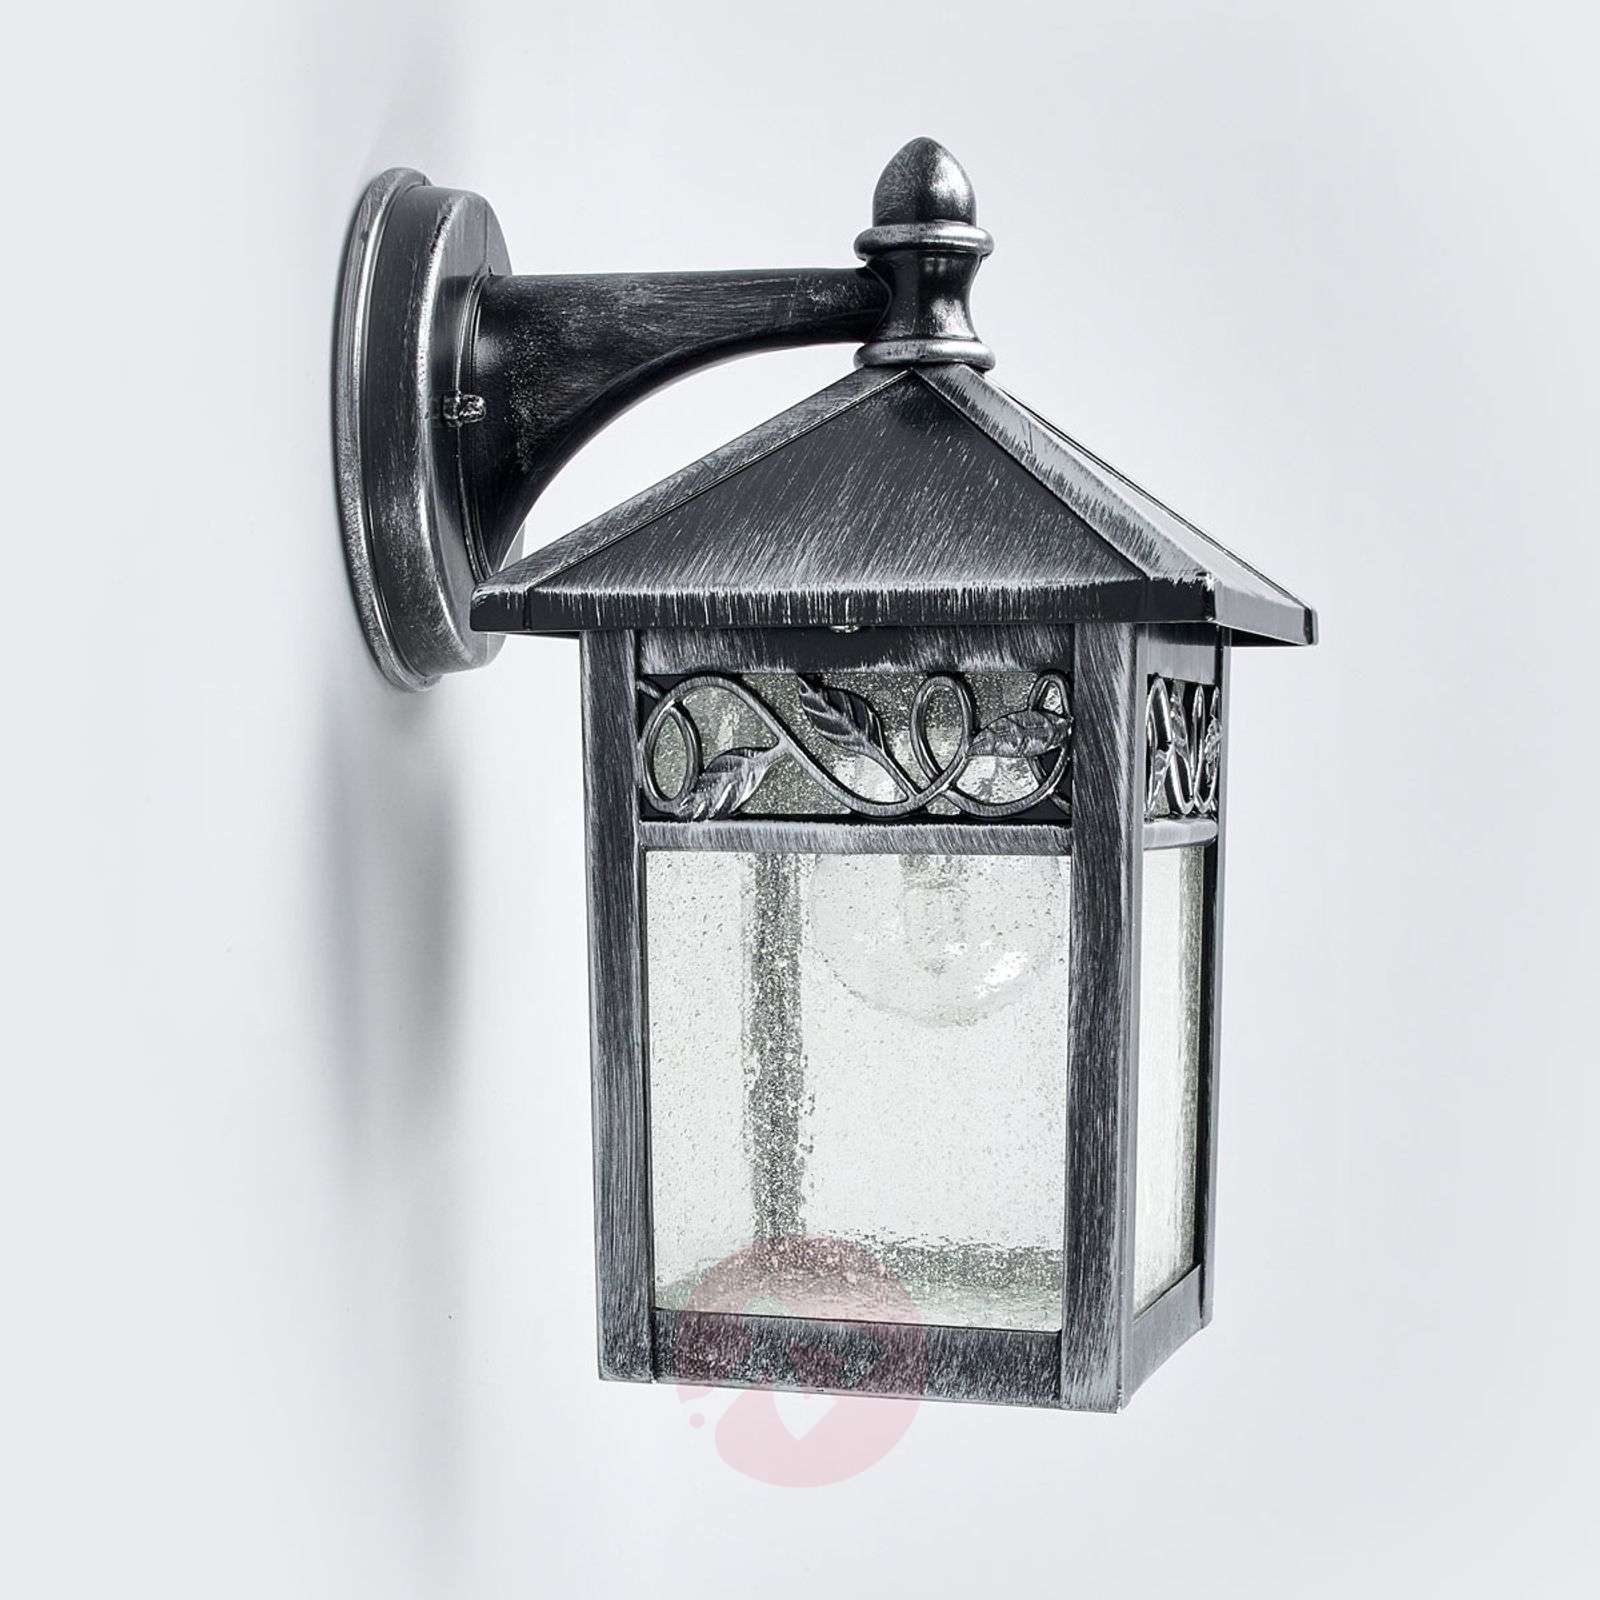 Winchcombe Outside Wall Light Elegantly Designed-3048263-01